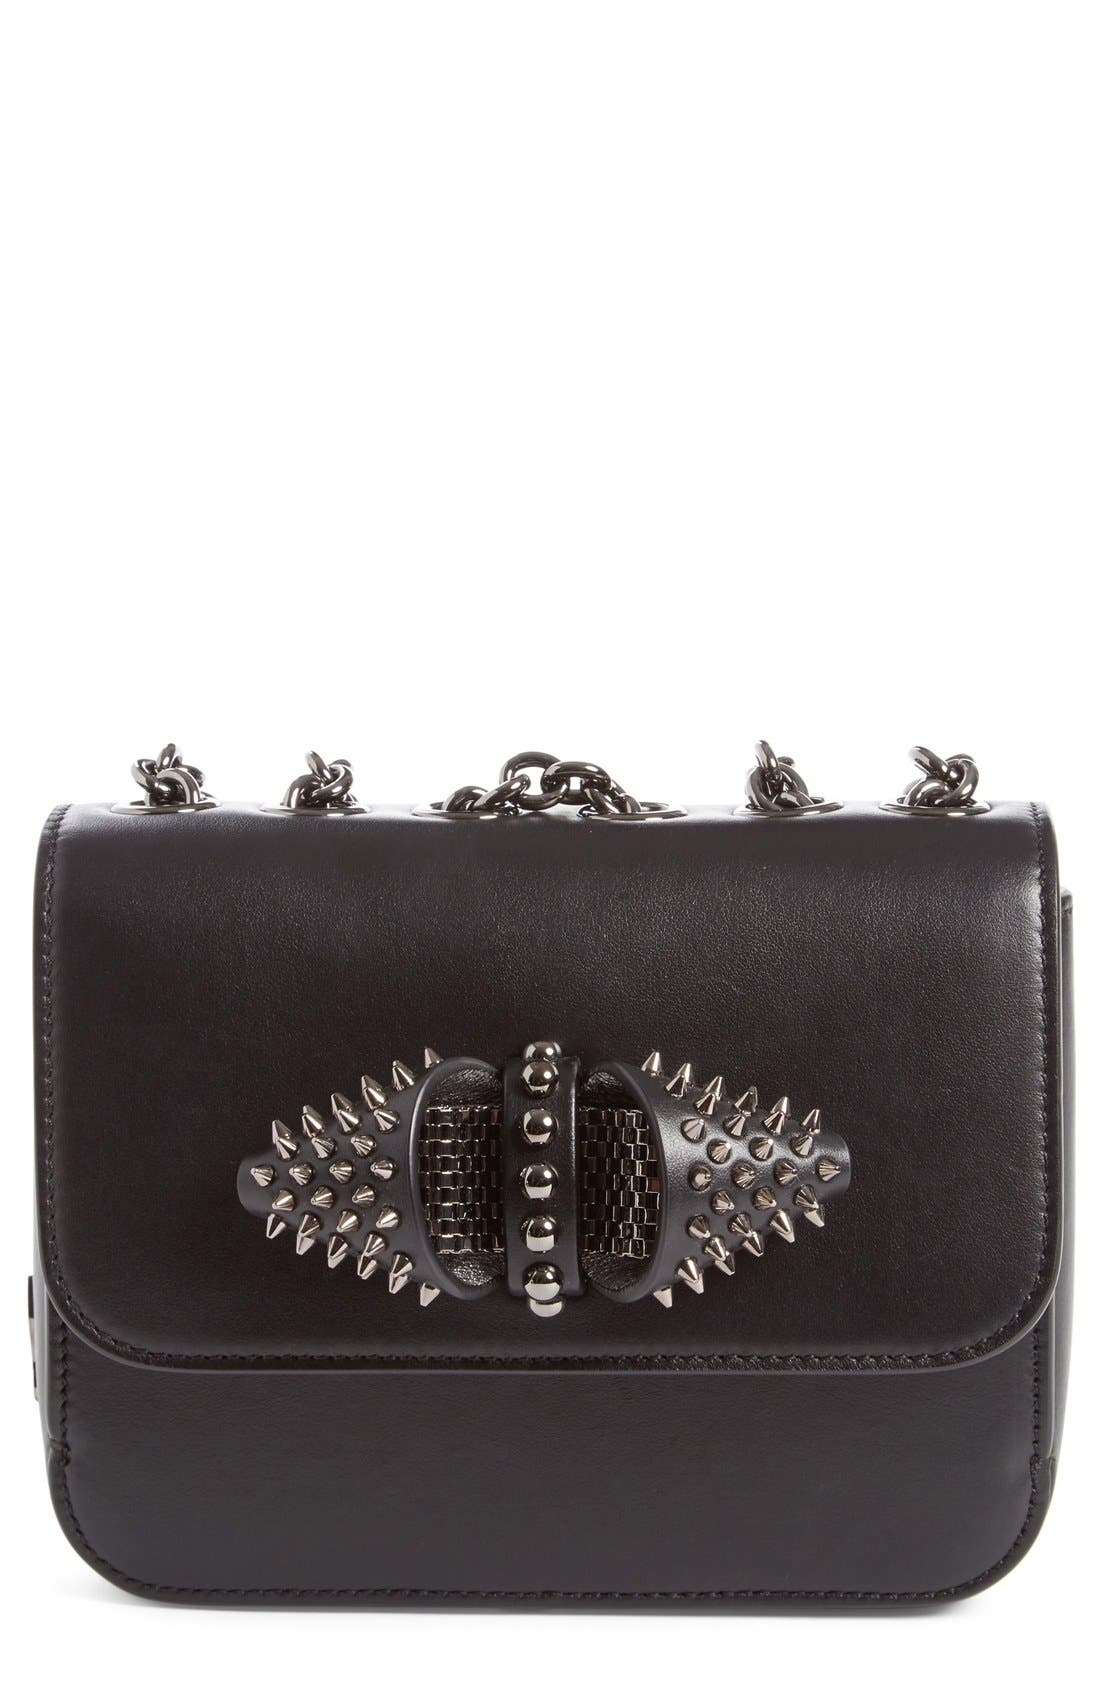 Main Image - Christian Louboutin 'Mini Sweet Charity' Spiked Calfskin Shoulder/Crossbody Bag